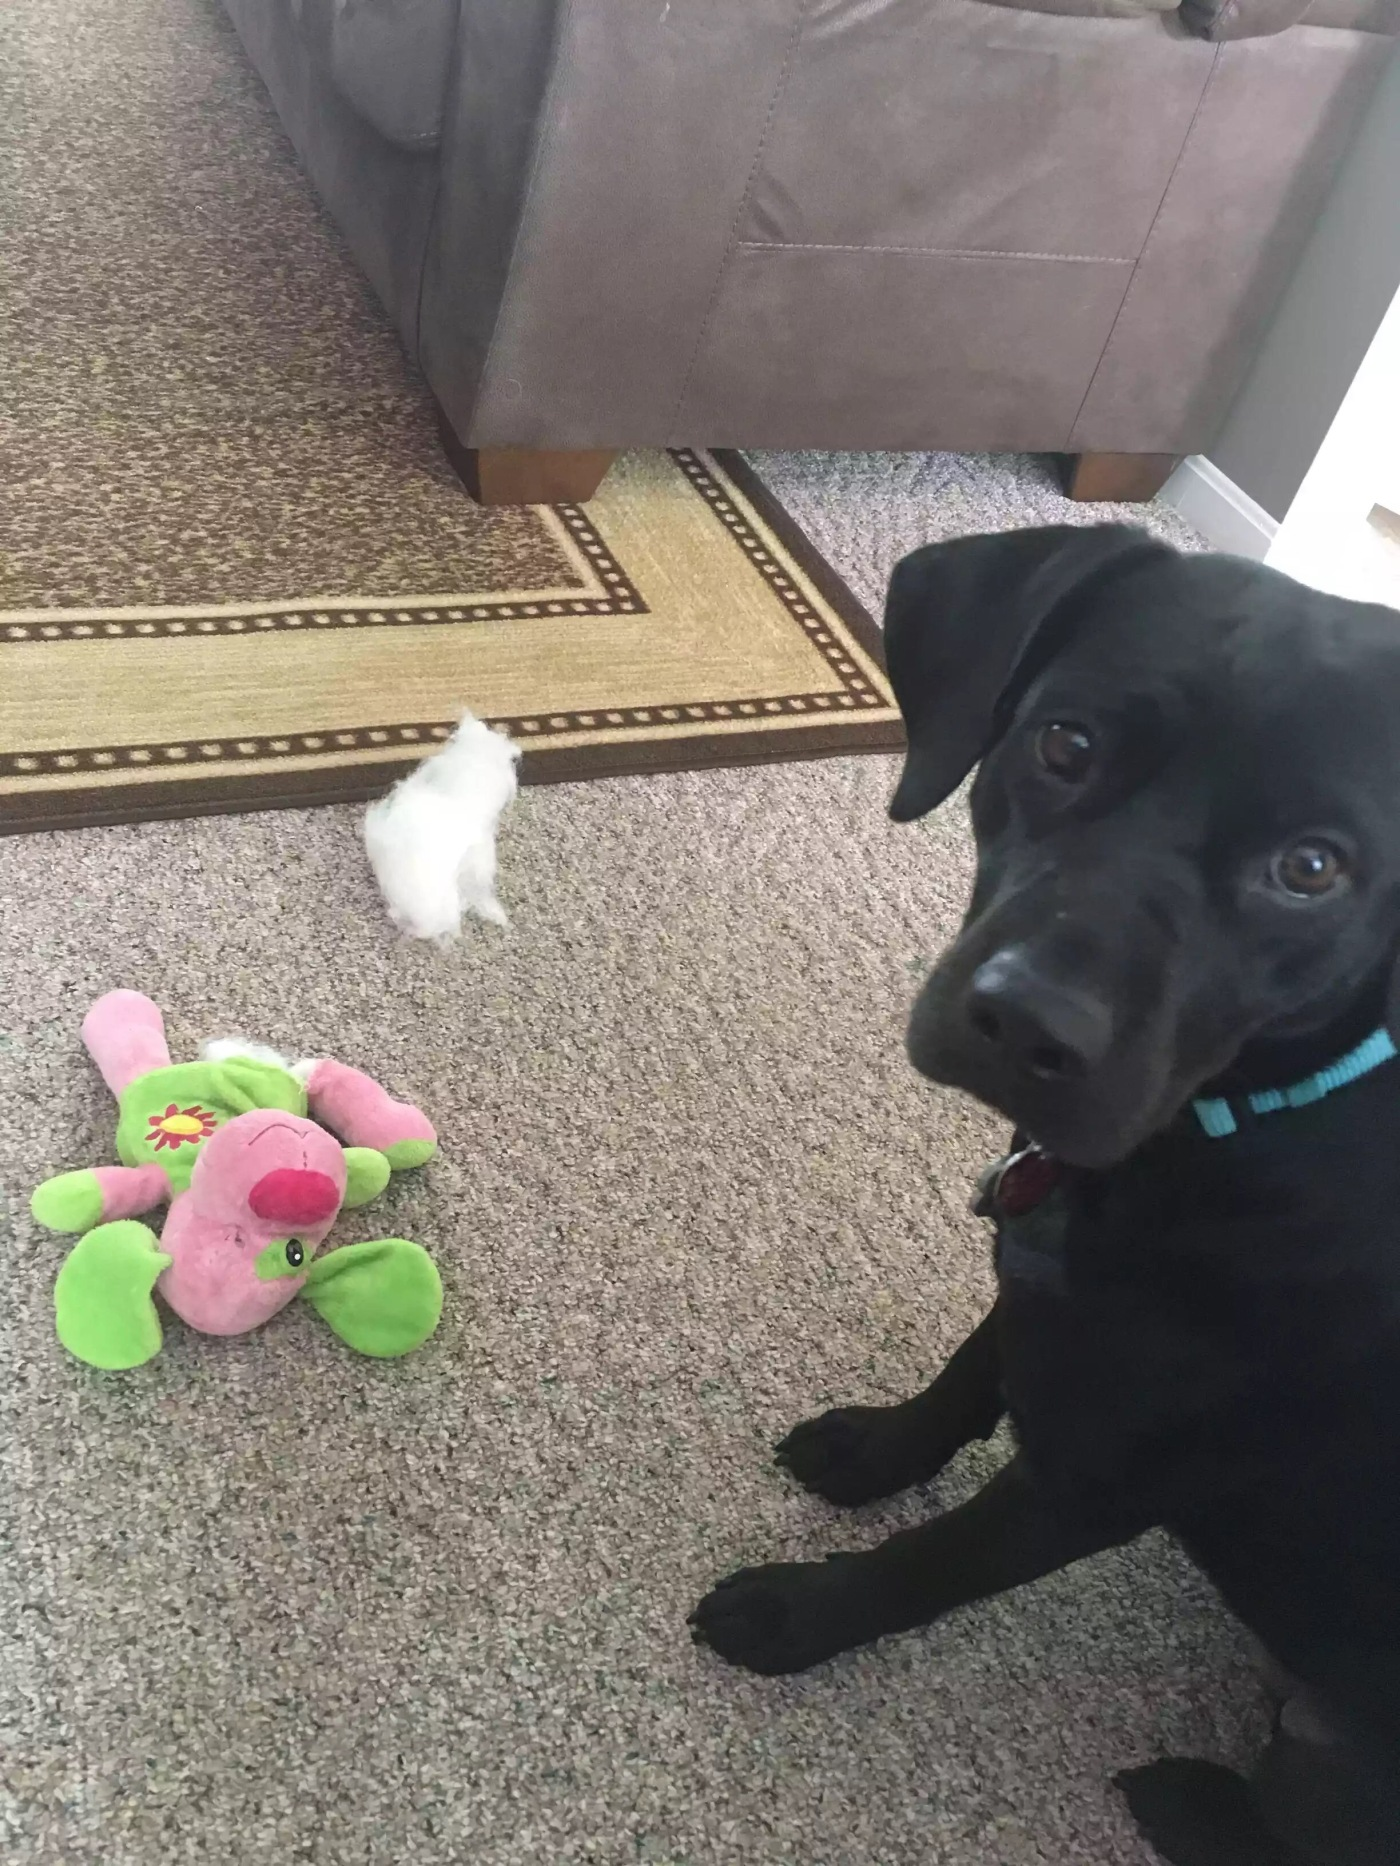 Photo of my dog, Allie, and her toy with the stuffing ripped out